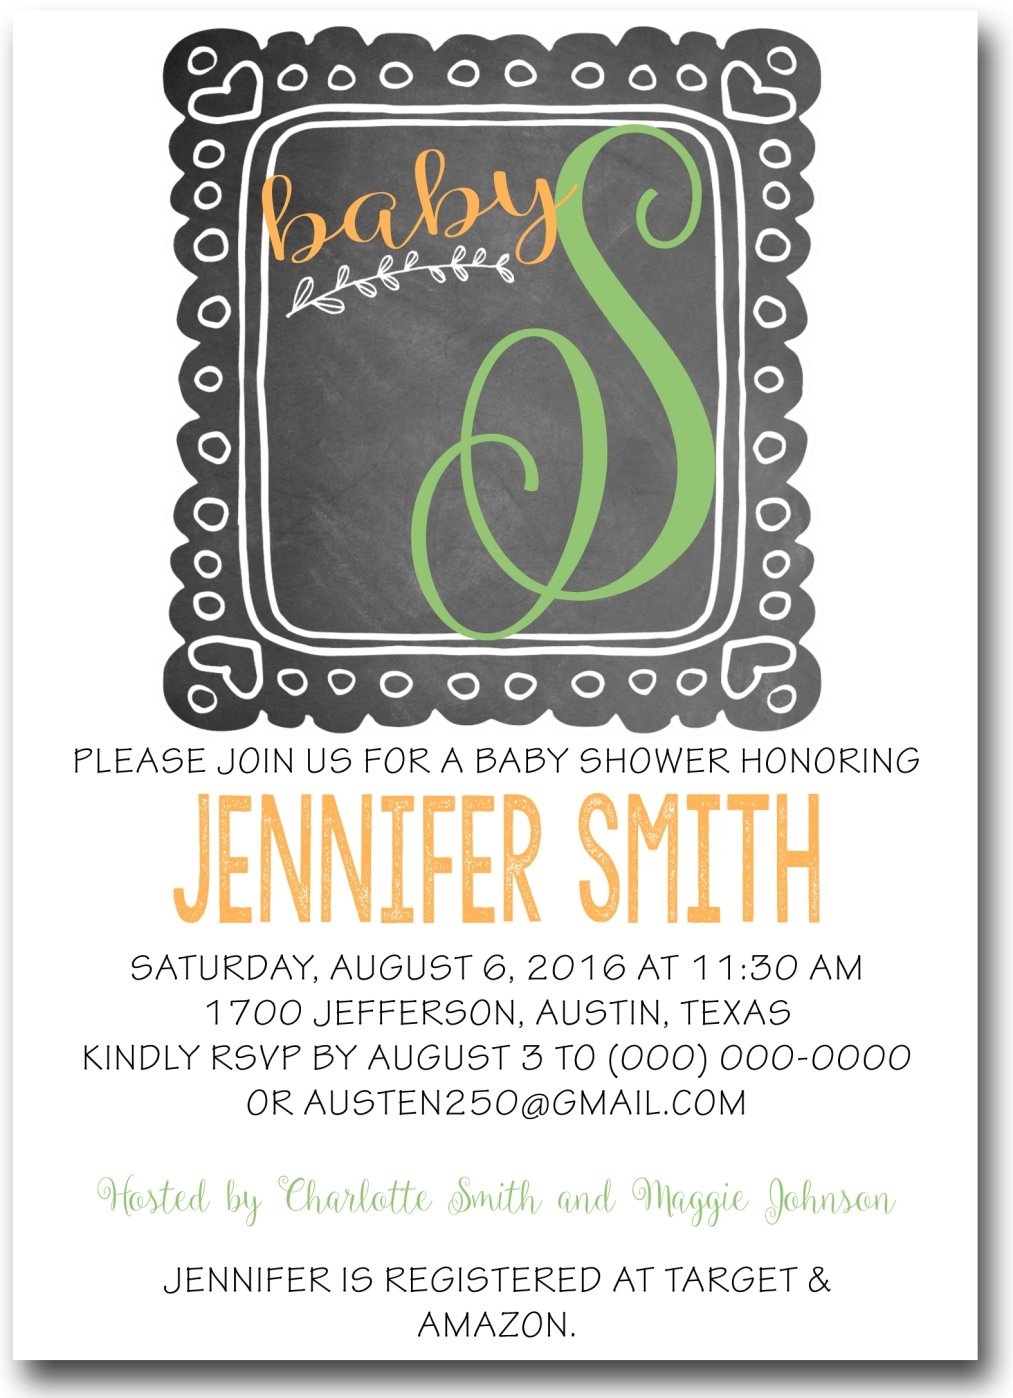 chalkboard frame baby shower invitation